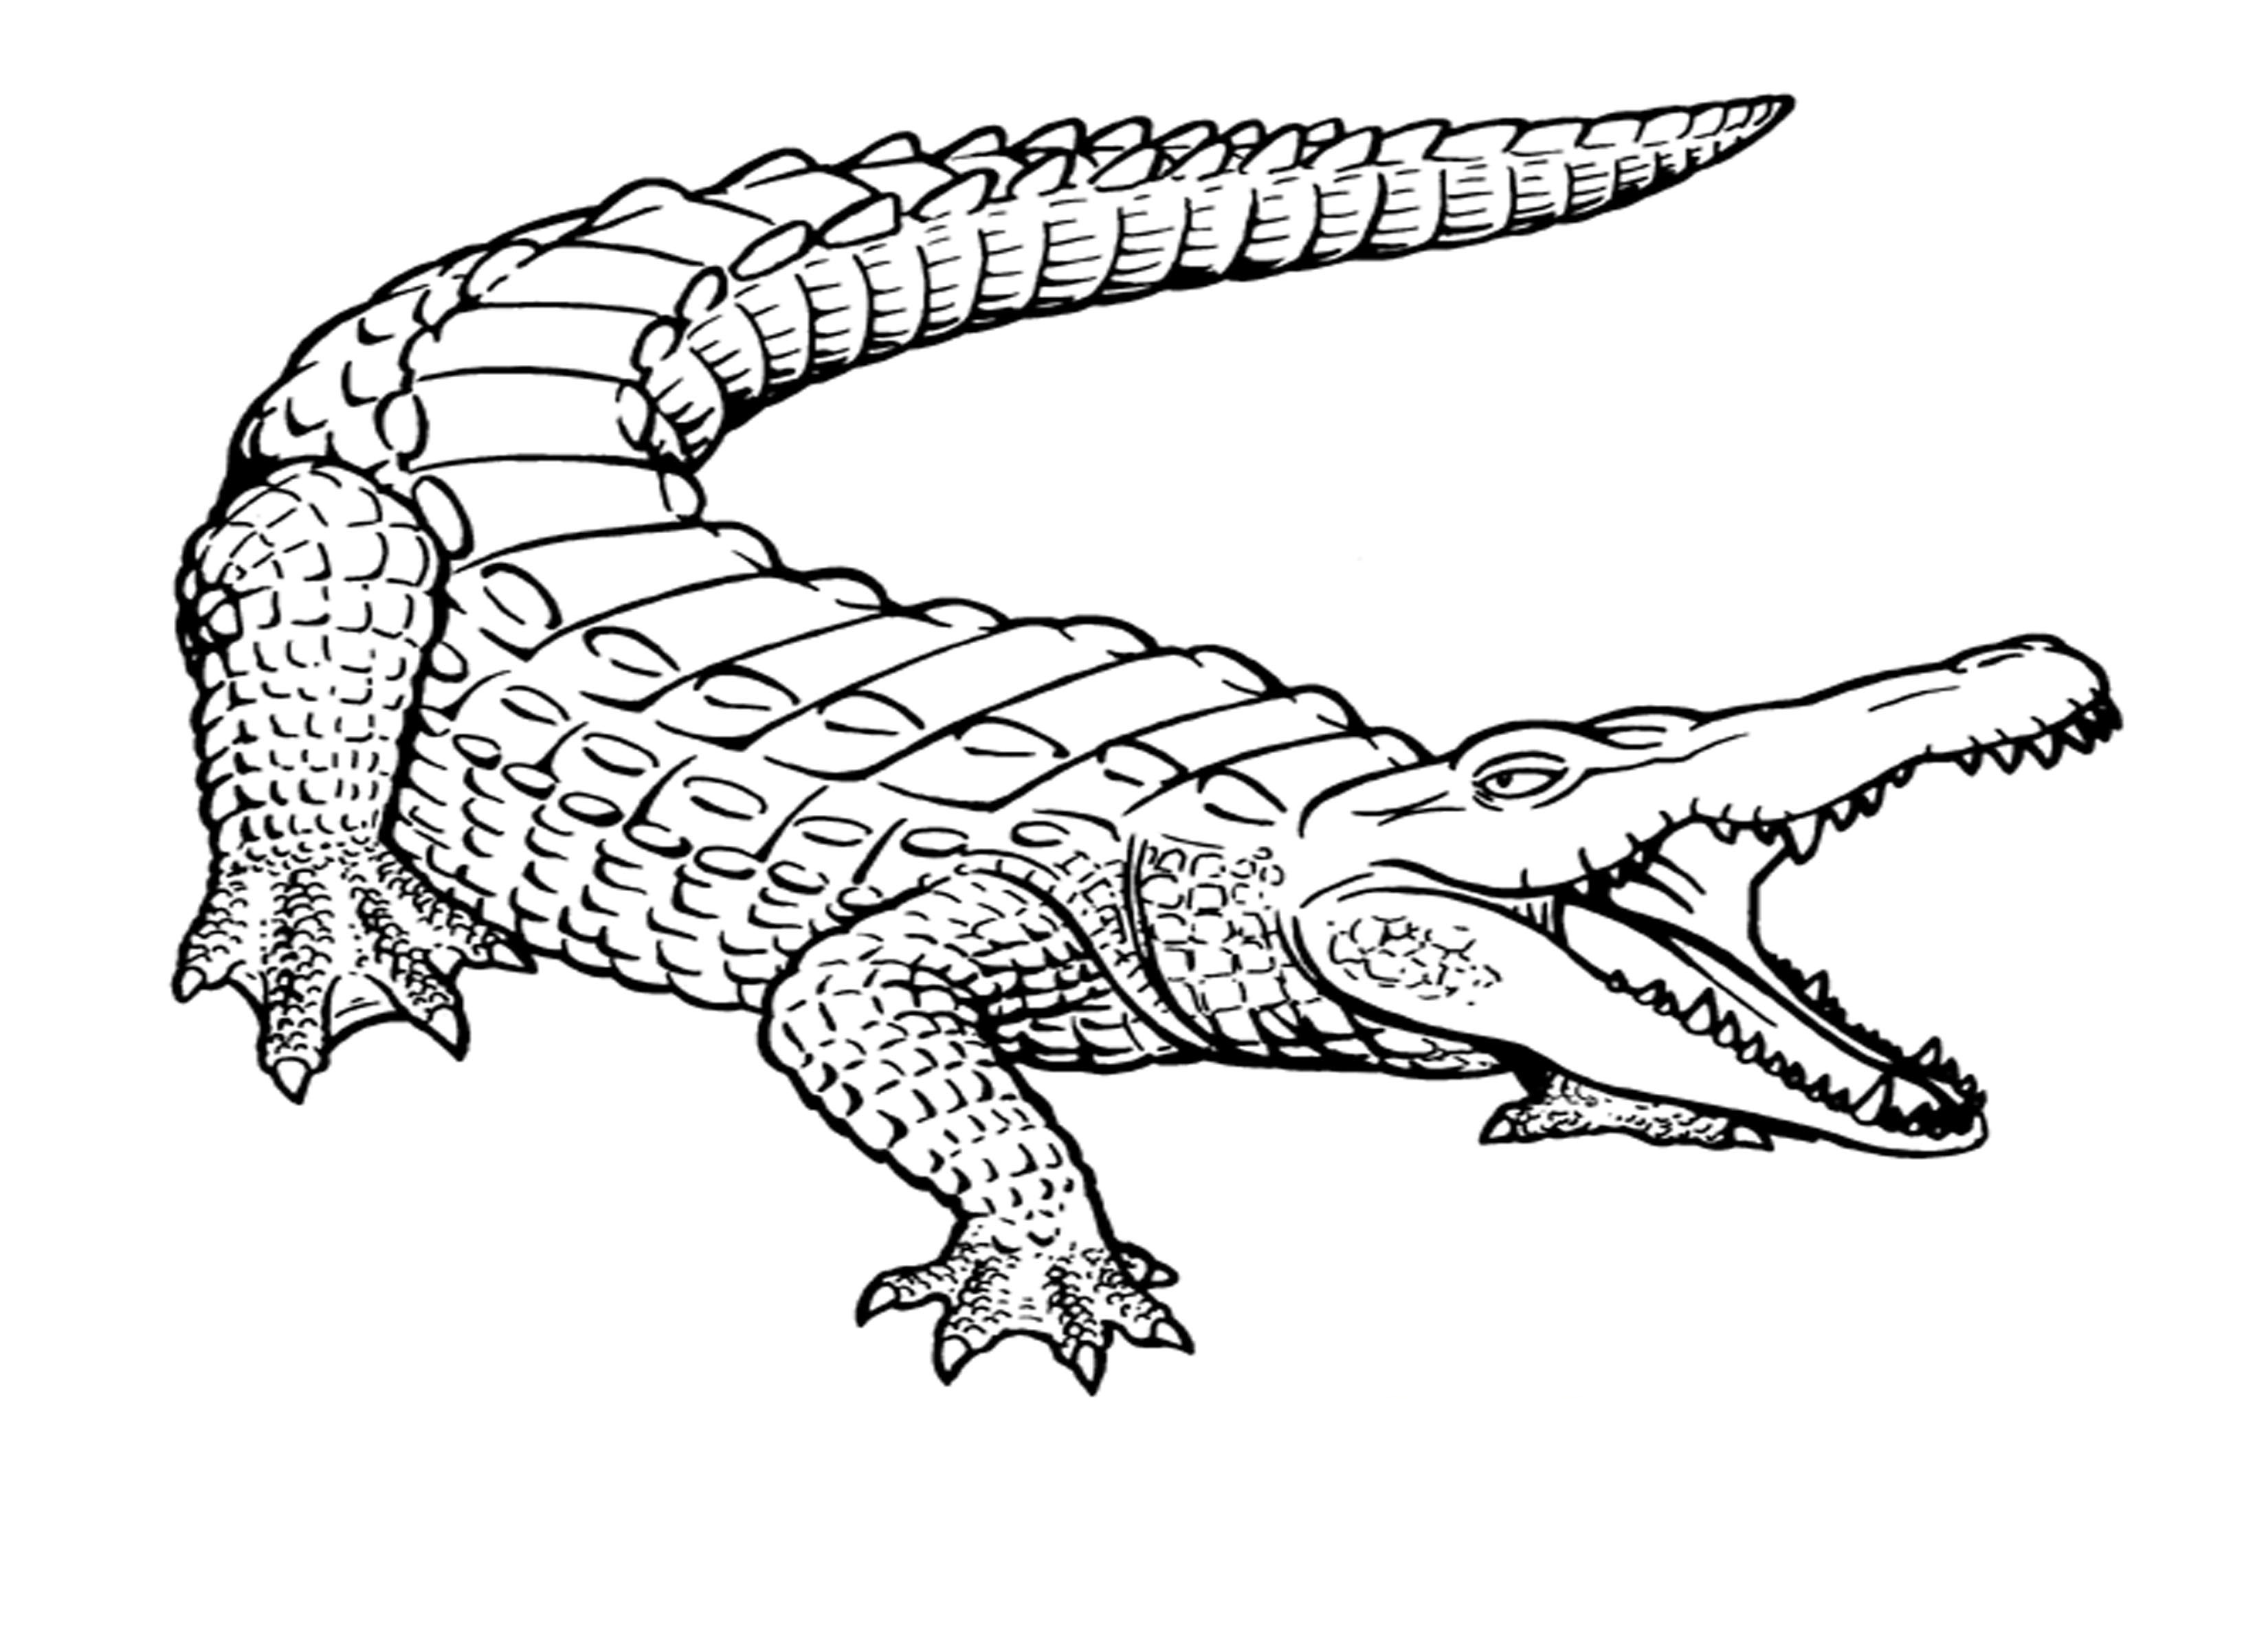 crocodile color free printable crocodile coloring pages for kids color crocodile